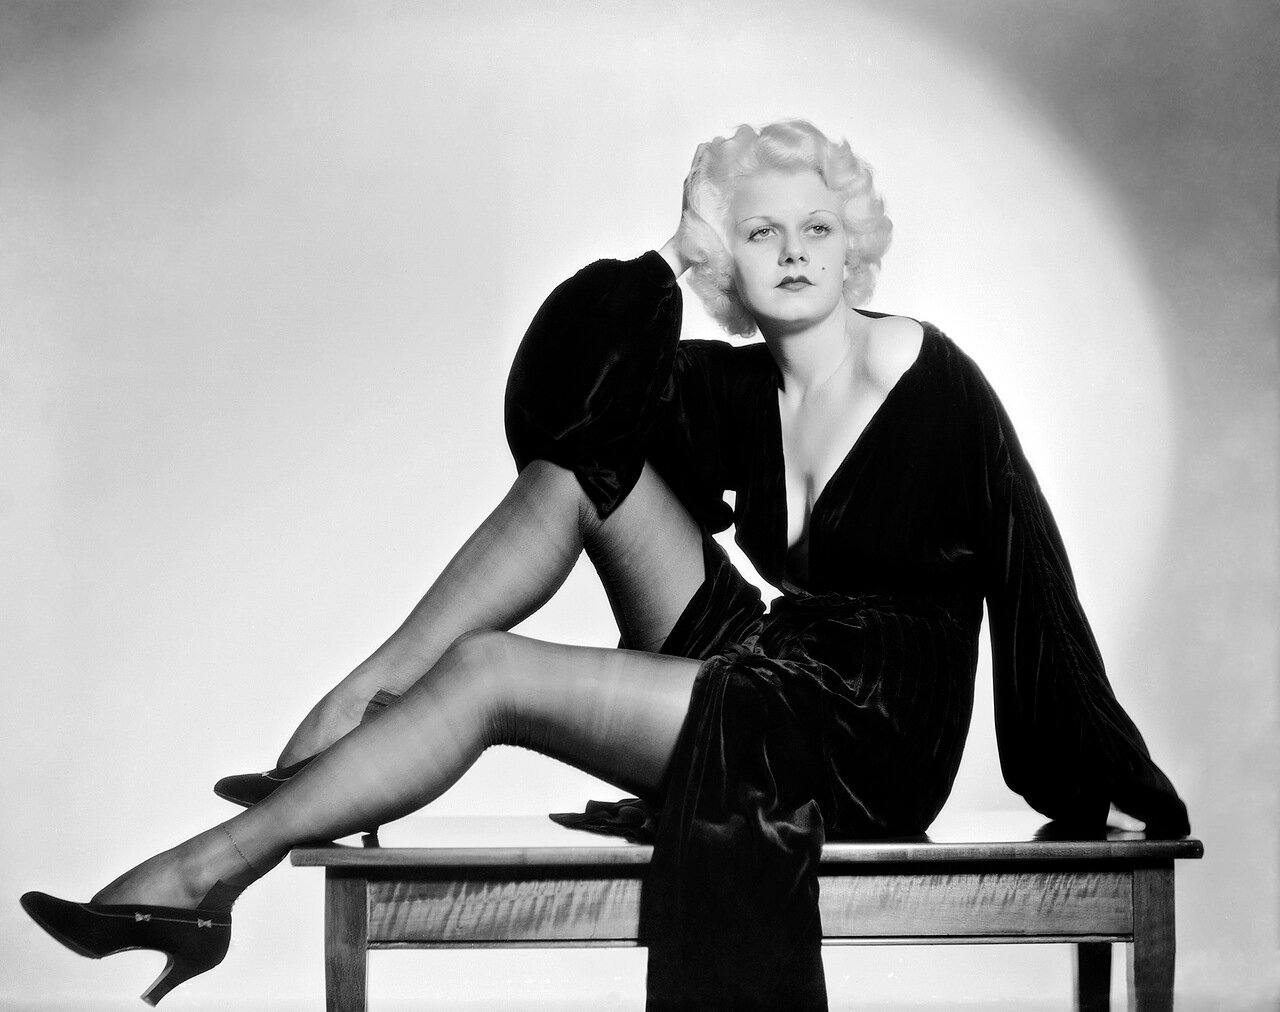 1931: American actress and sex symbol Jean Harlow (1911 - 1937) shows off her long stockinged legs as Ann Schuyler in 'Platinum Blonde', directed by Frank Capra.